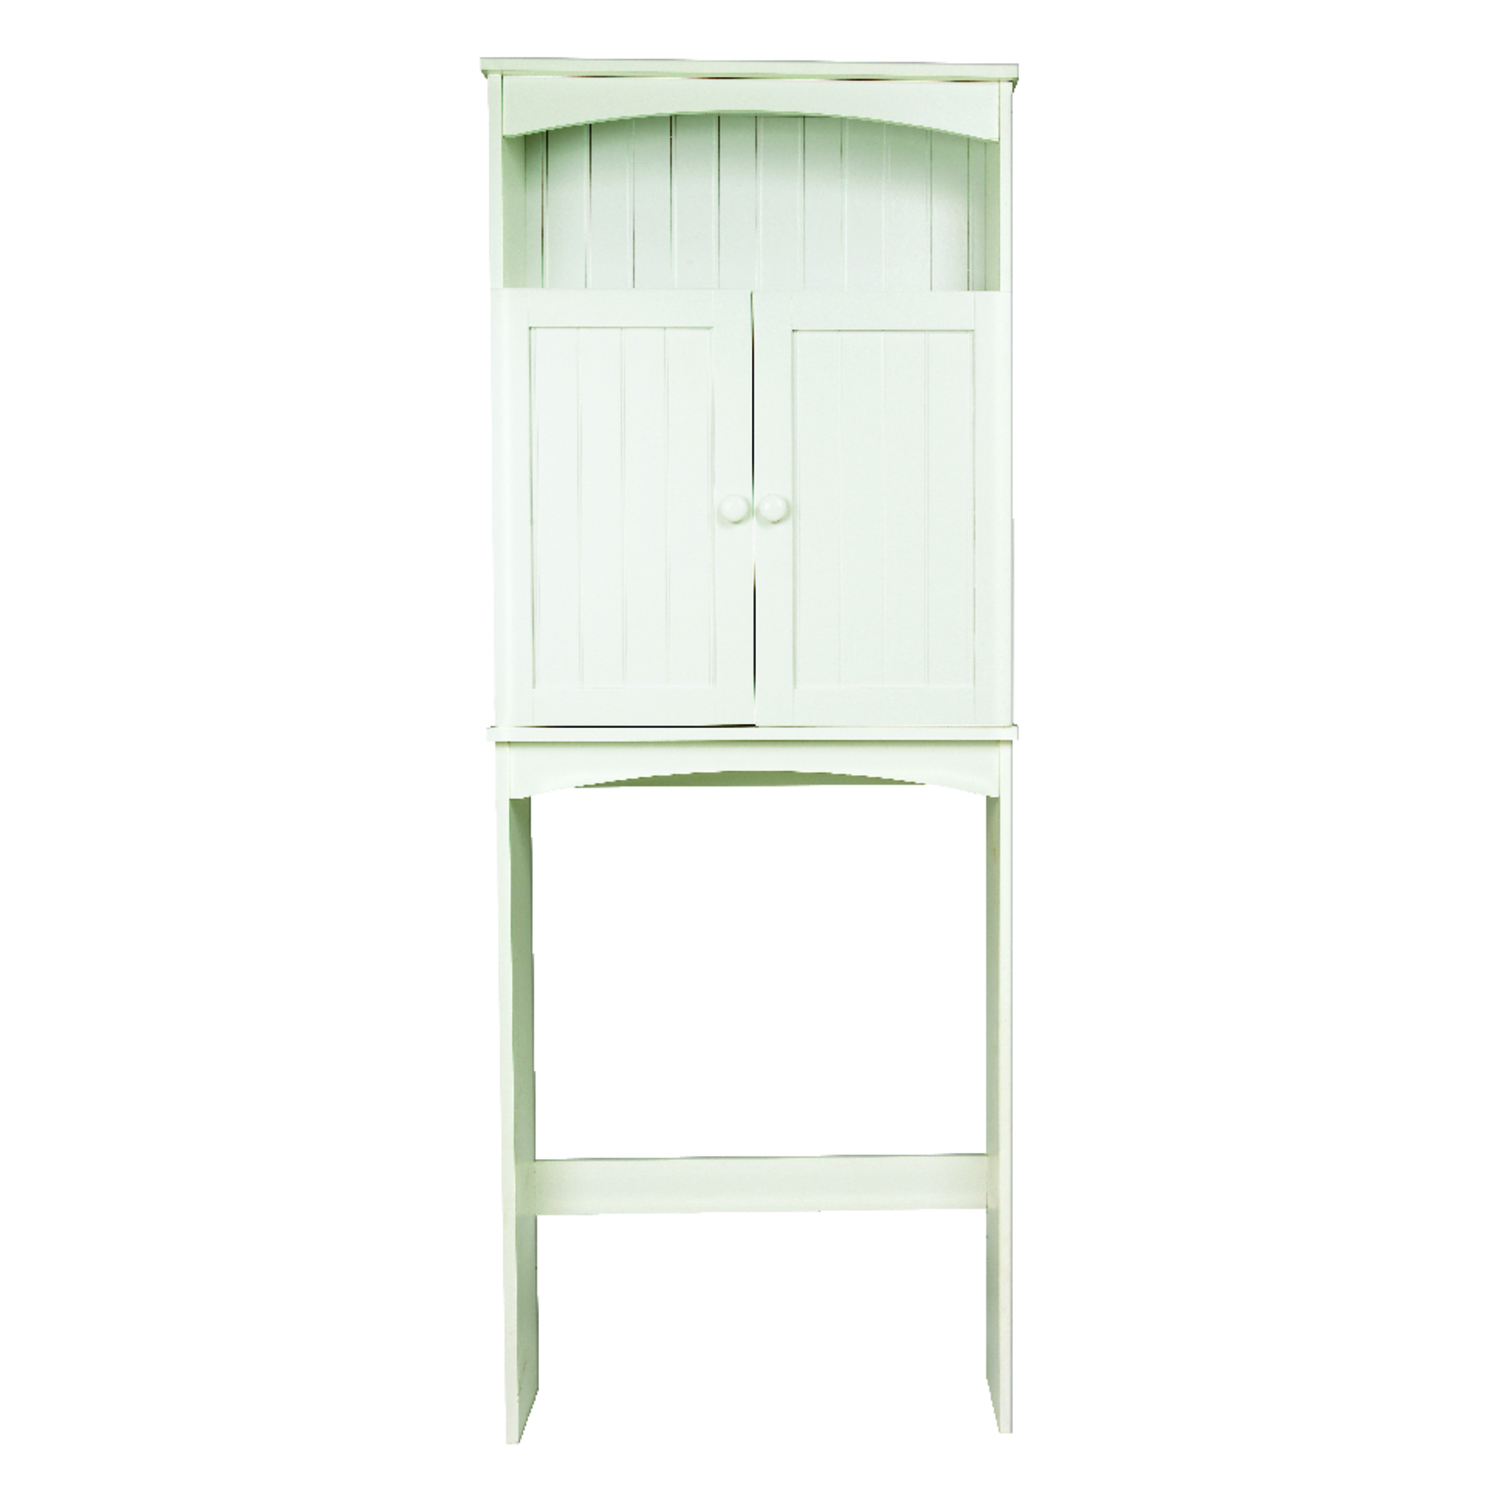 Zenith  Cottage Collection  Bathroom Spacesaver  64.8 in. H x 24.6 in. W x 8.6 in. L White  Wood